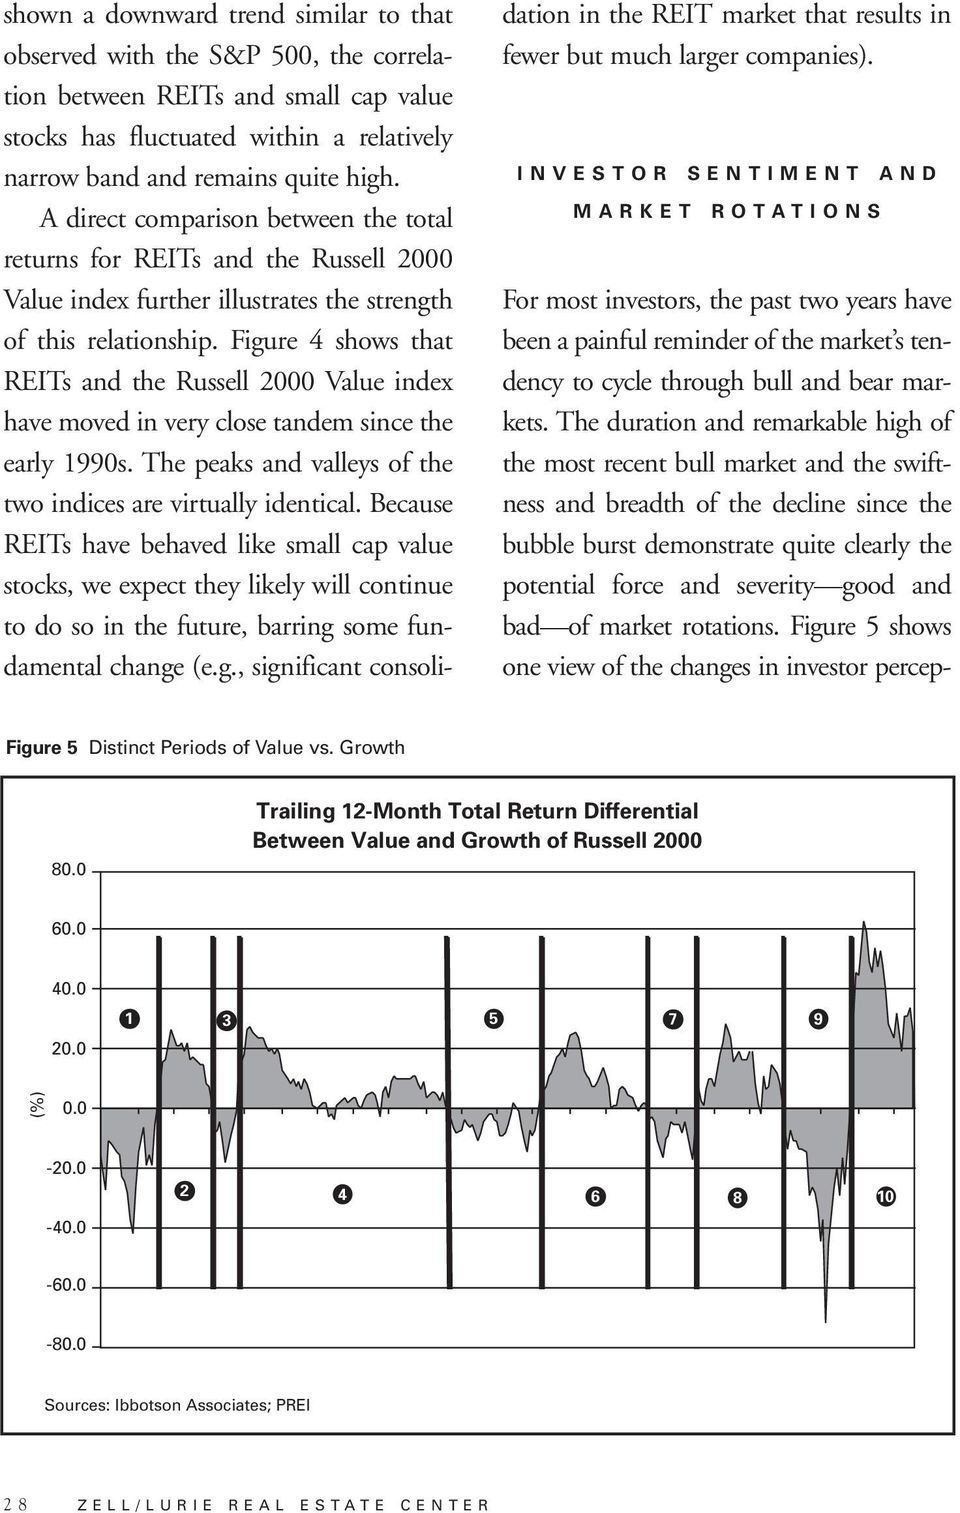 Figure 4 shows that REITs and the Russell 2000 Value index have moved in very close tandem since the early 1990s. The peaks and valleys of the two indices are virtually identical.